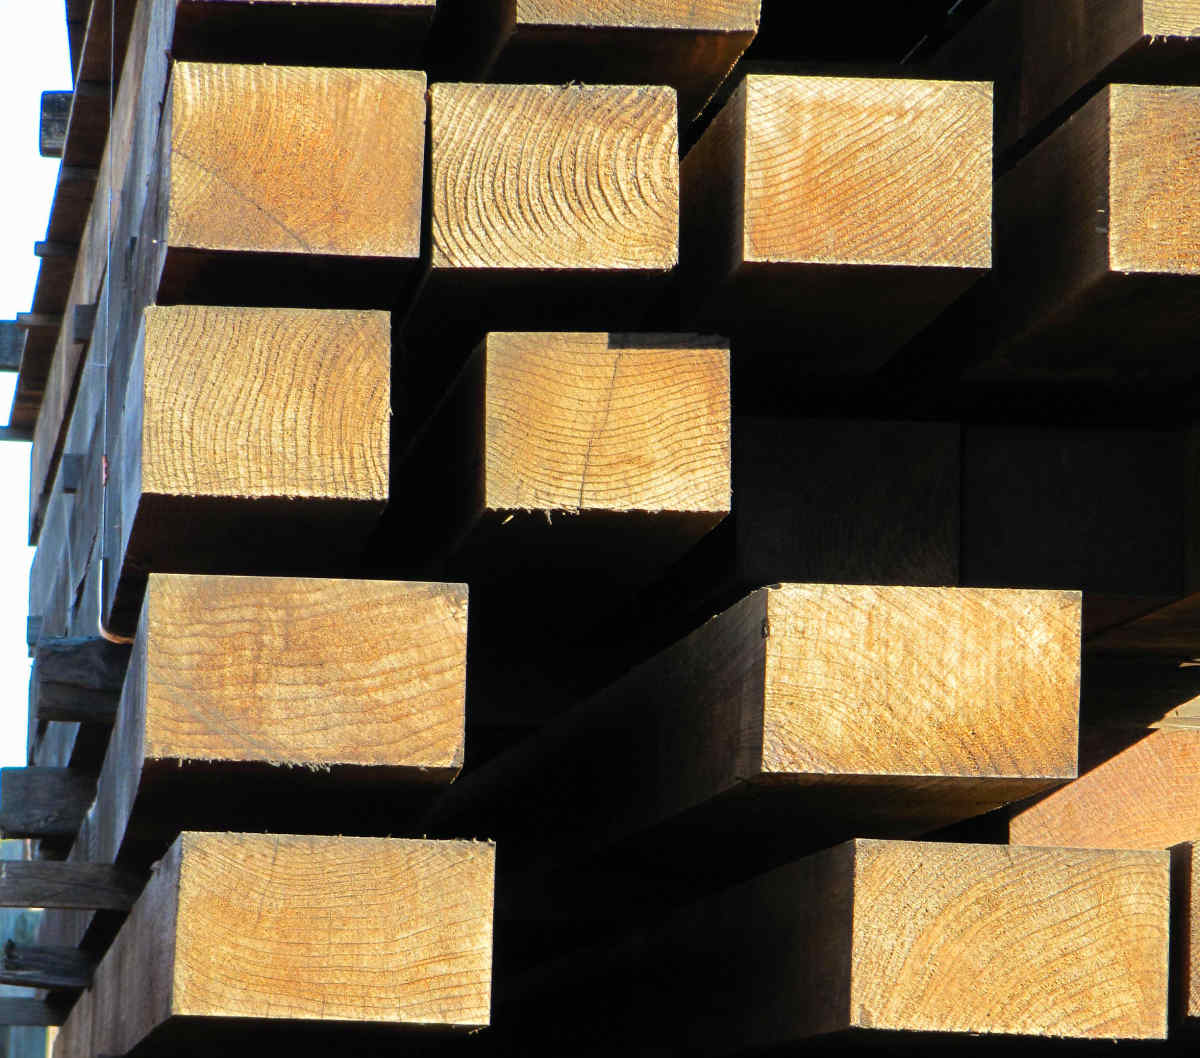 LARGE REDWOOD TIMBERS AIR DRYING FOR YEARS AT MILL